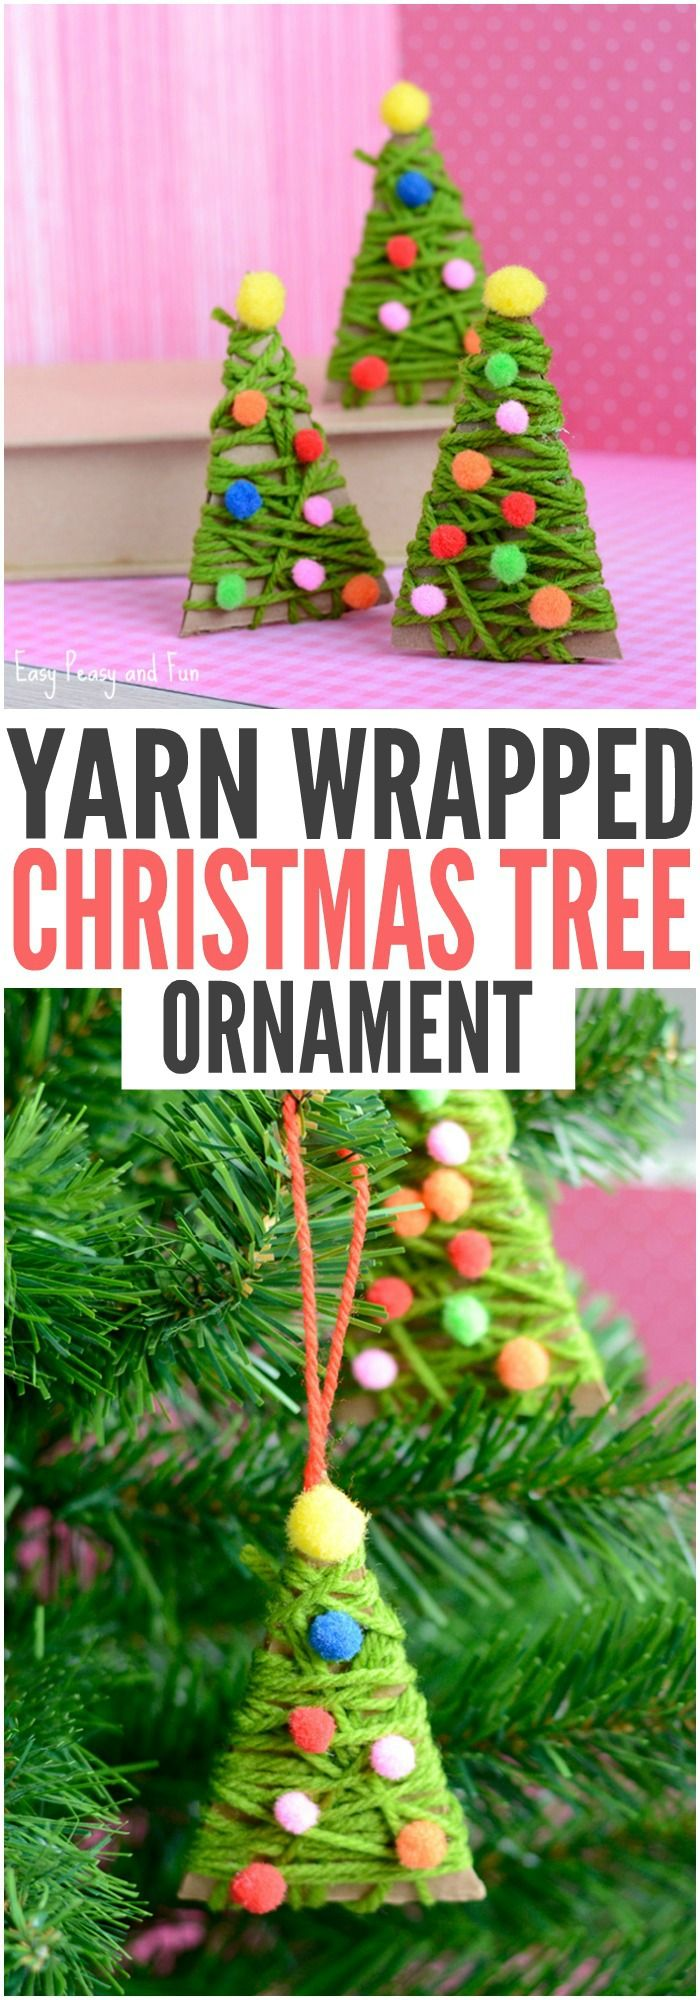 These yarn wrapped ornaments are perfect for kids to make! And they will become cherished ornaments for your Christmas tree year after year.